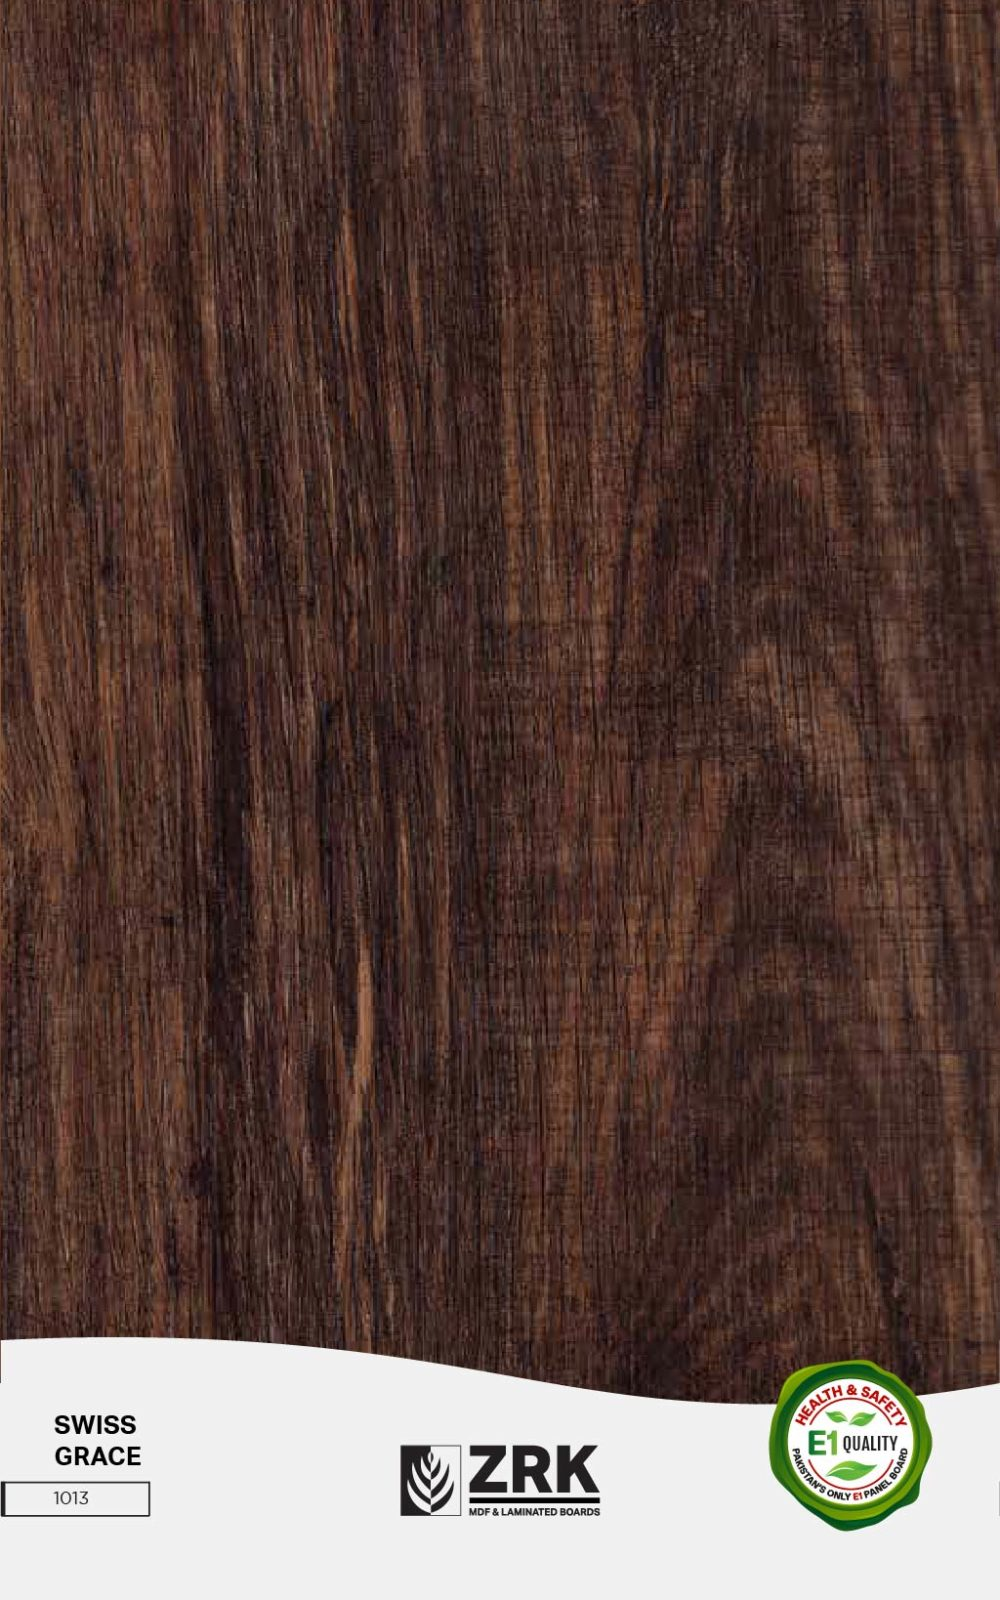 Swiss Grace - Wood Grain - 1013